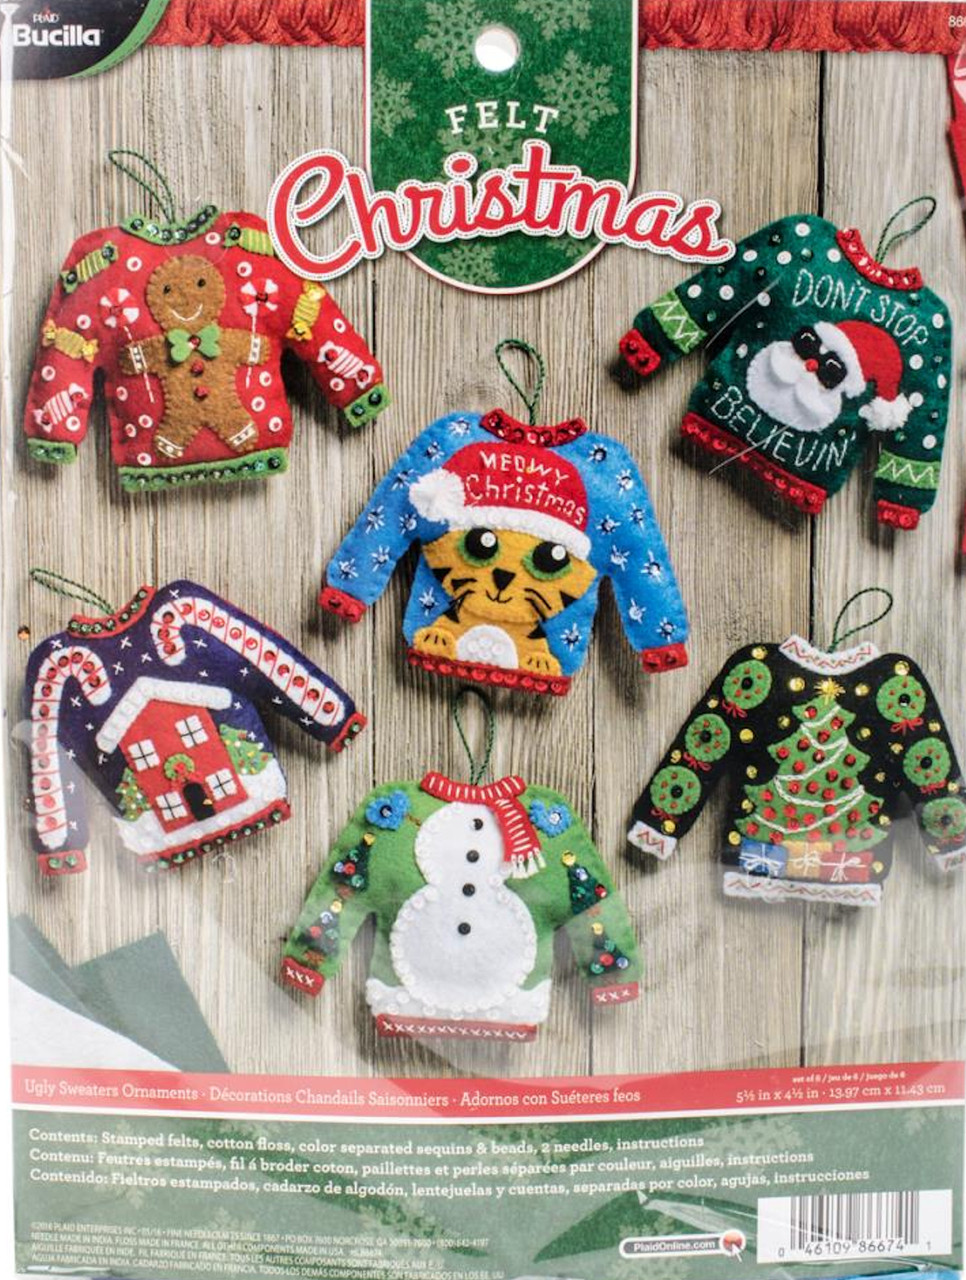 Plaid / Bucilla - Ugly Sweater Ornaments